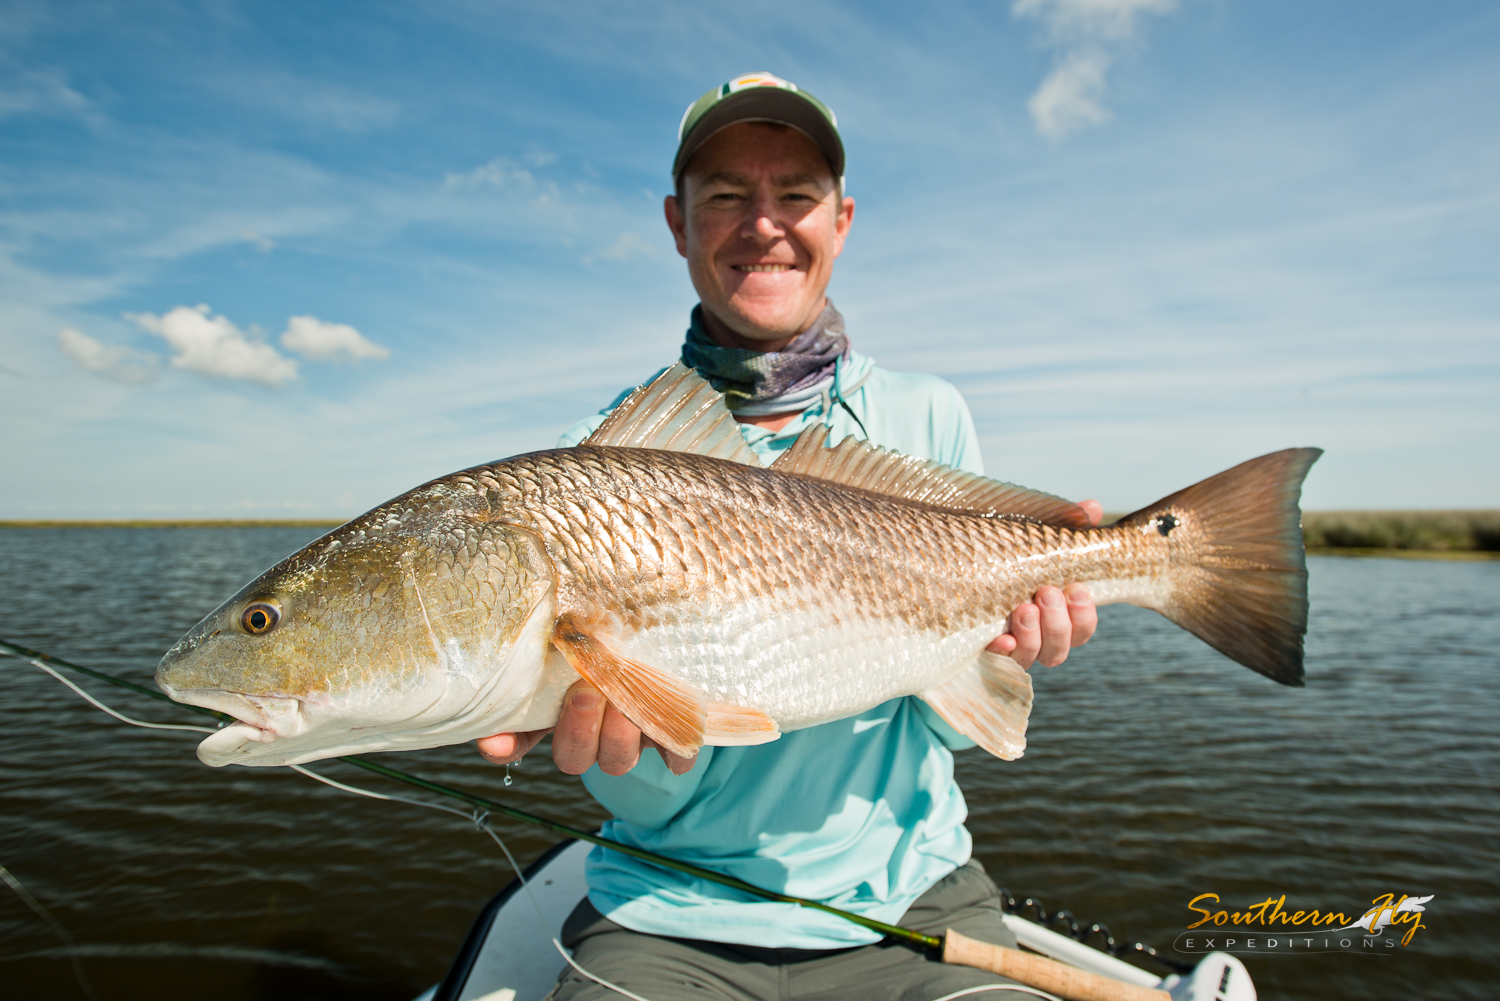 Kentucky Anglers Fly Fishing New Orleans Southern Fly Expeditions